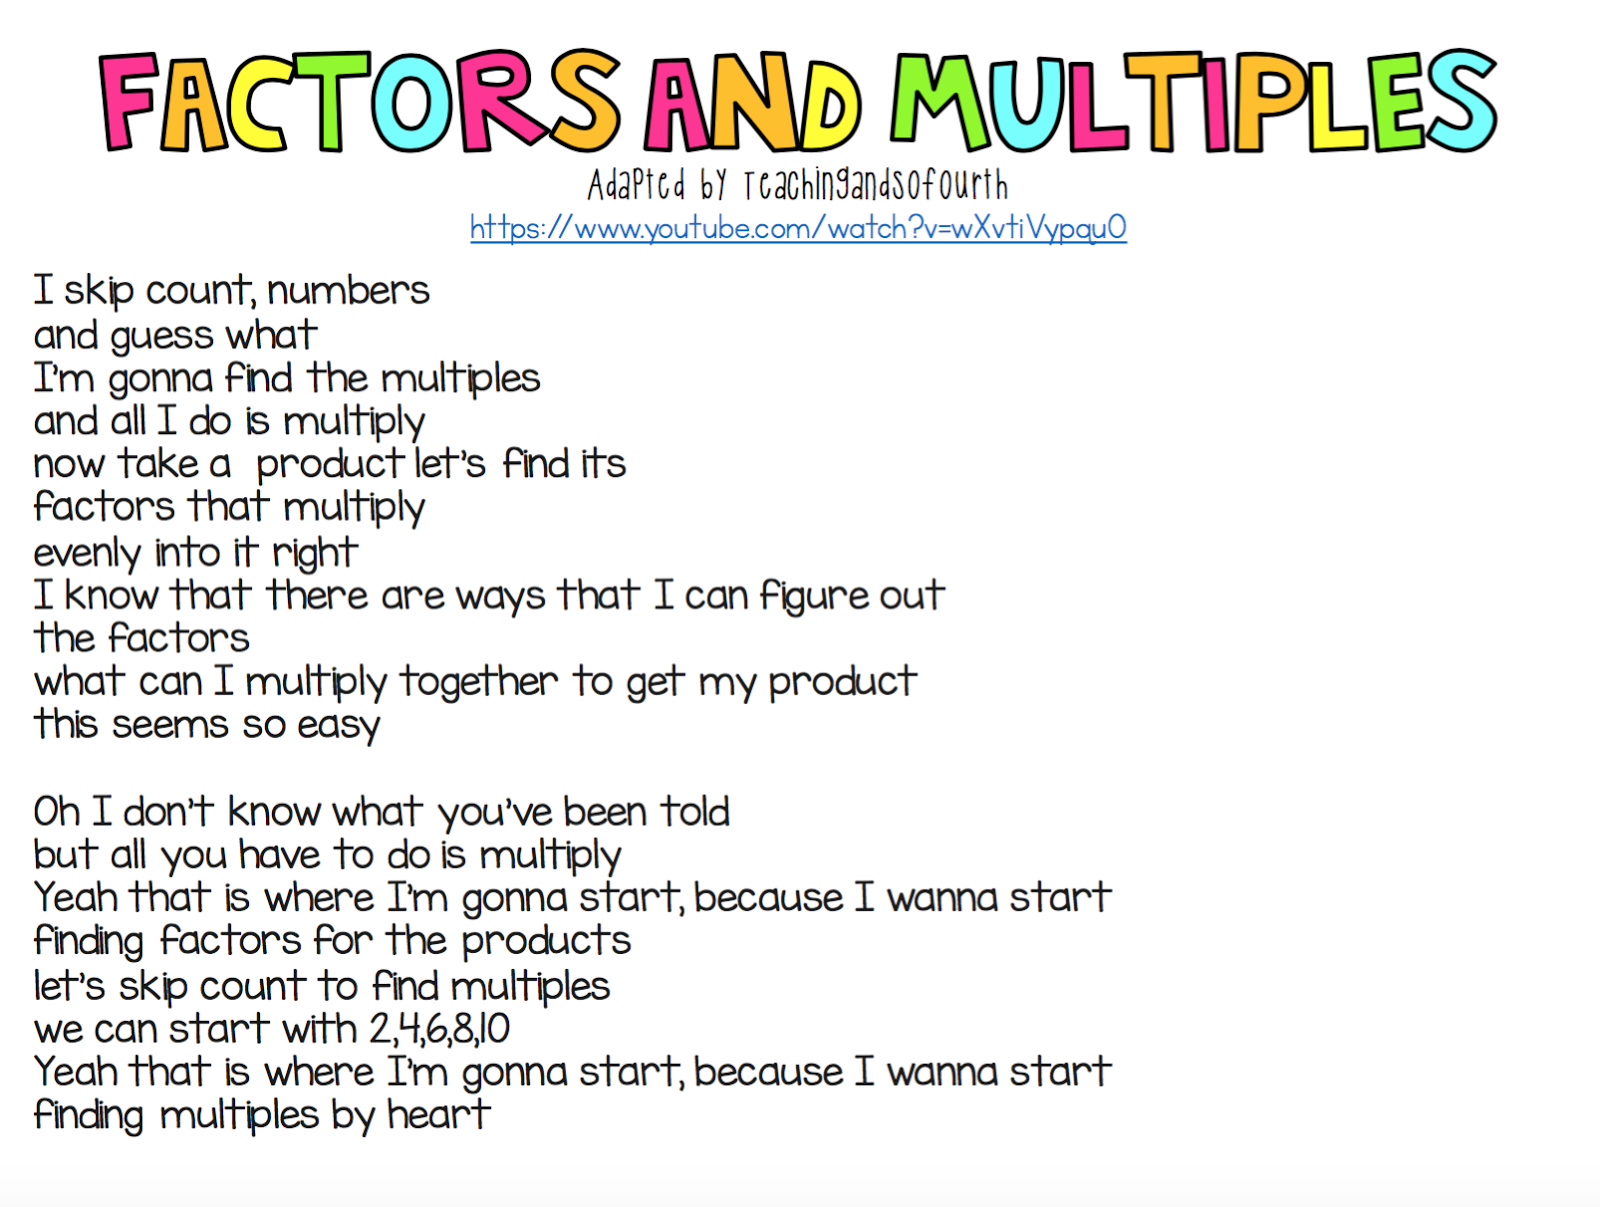 Teaching And So Fourth Factors And Multiples